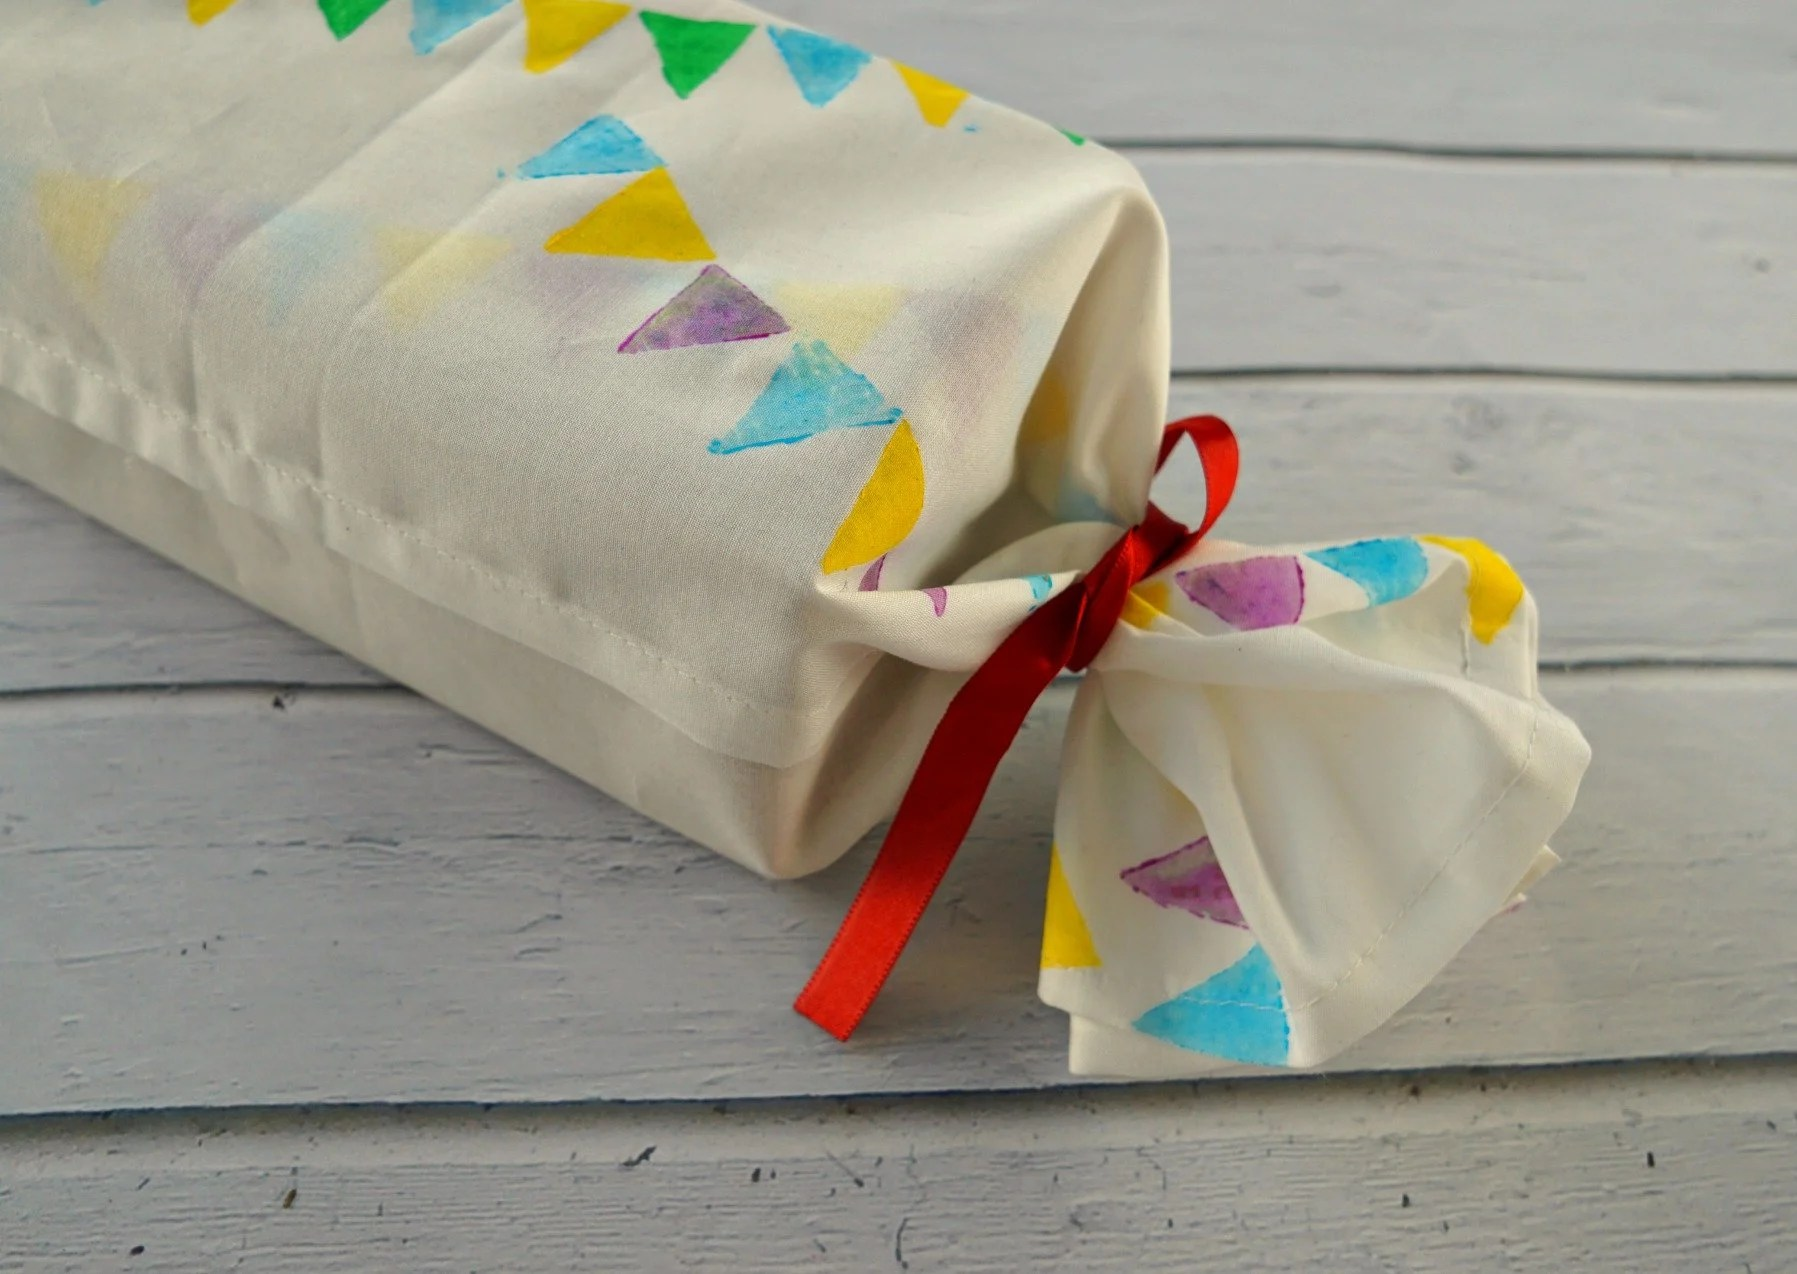 Fancy This Packaging Is So Or Holidays Easy Tutorial By Makeup Dummy Original How To Diy Fabric Gift Wrapping Stamps houzz-03 Creative Gift Packaging